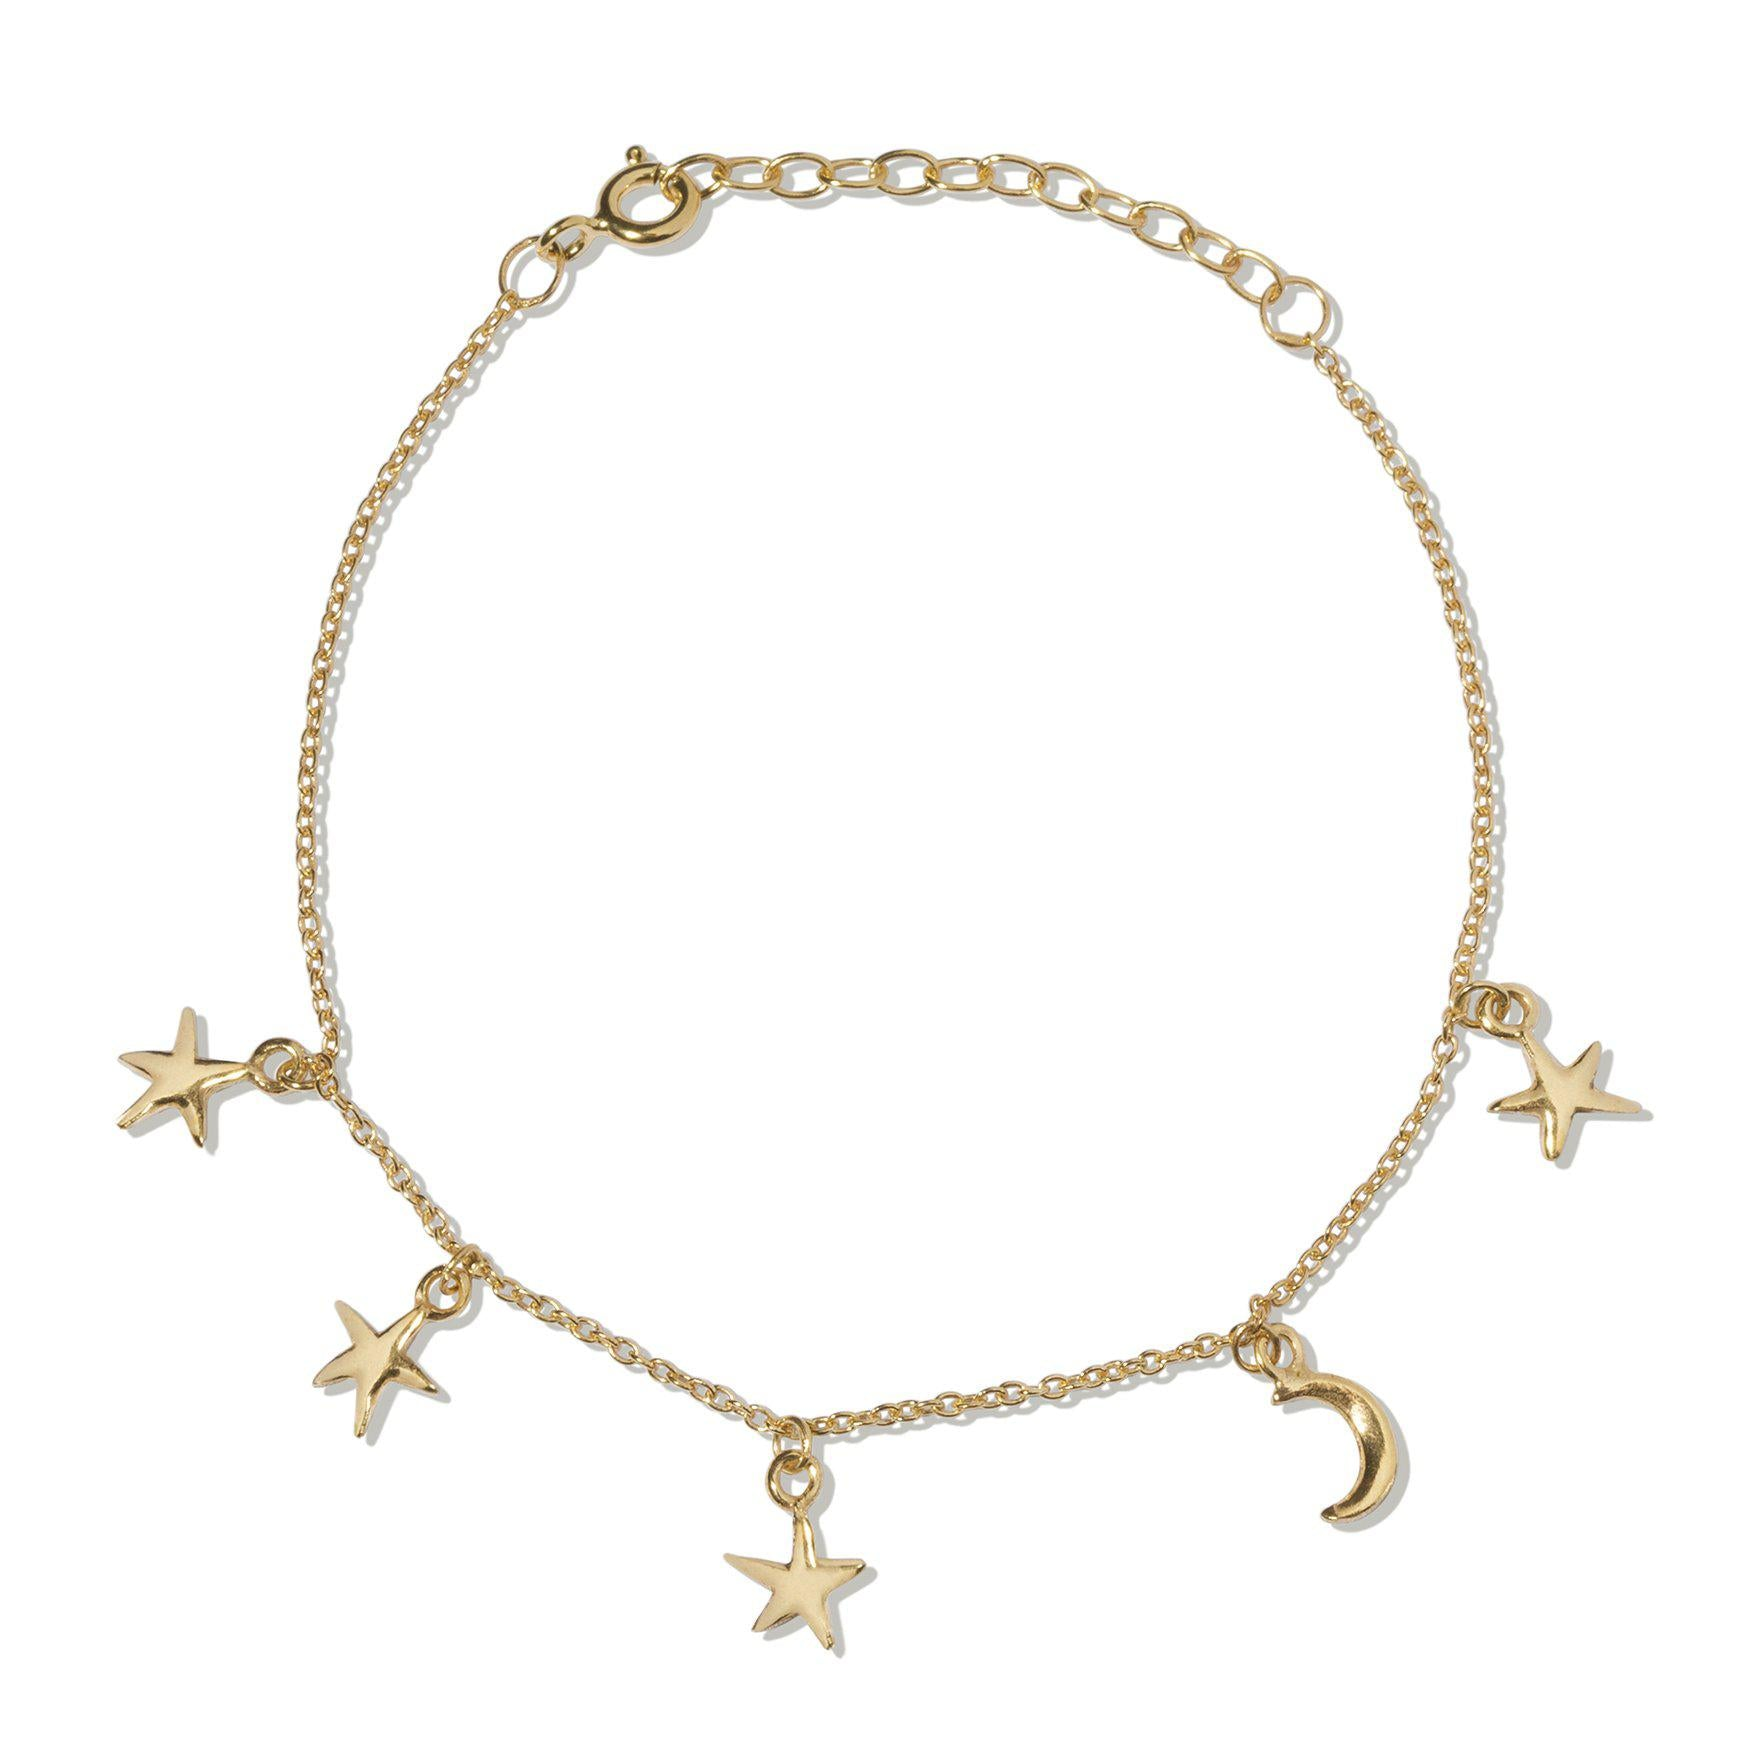 The Starry Night Bracelet - Gold Plated-Bracelet / Bangle-Black Betty Design